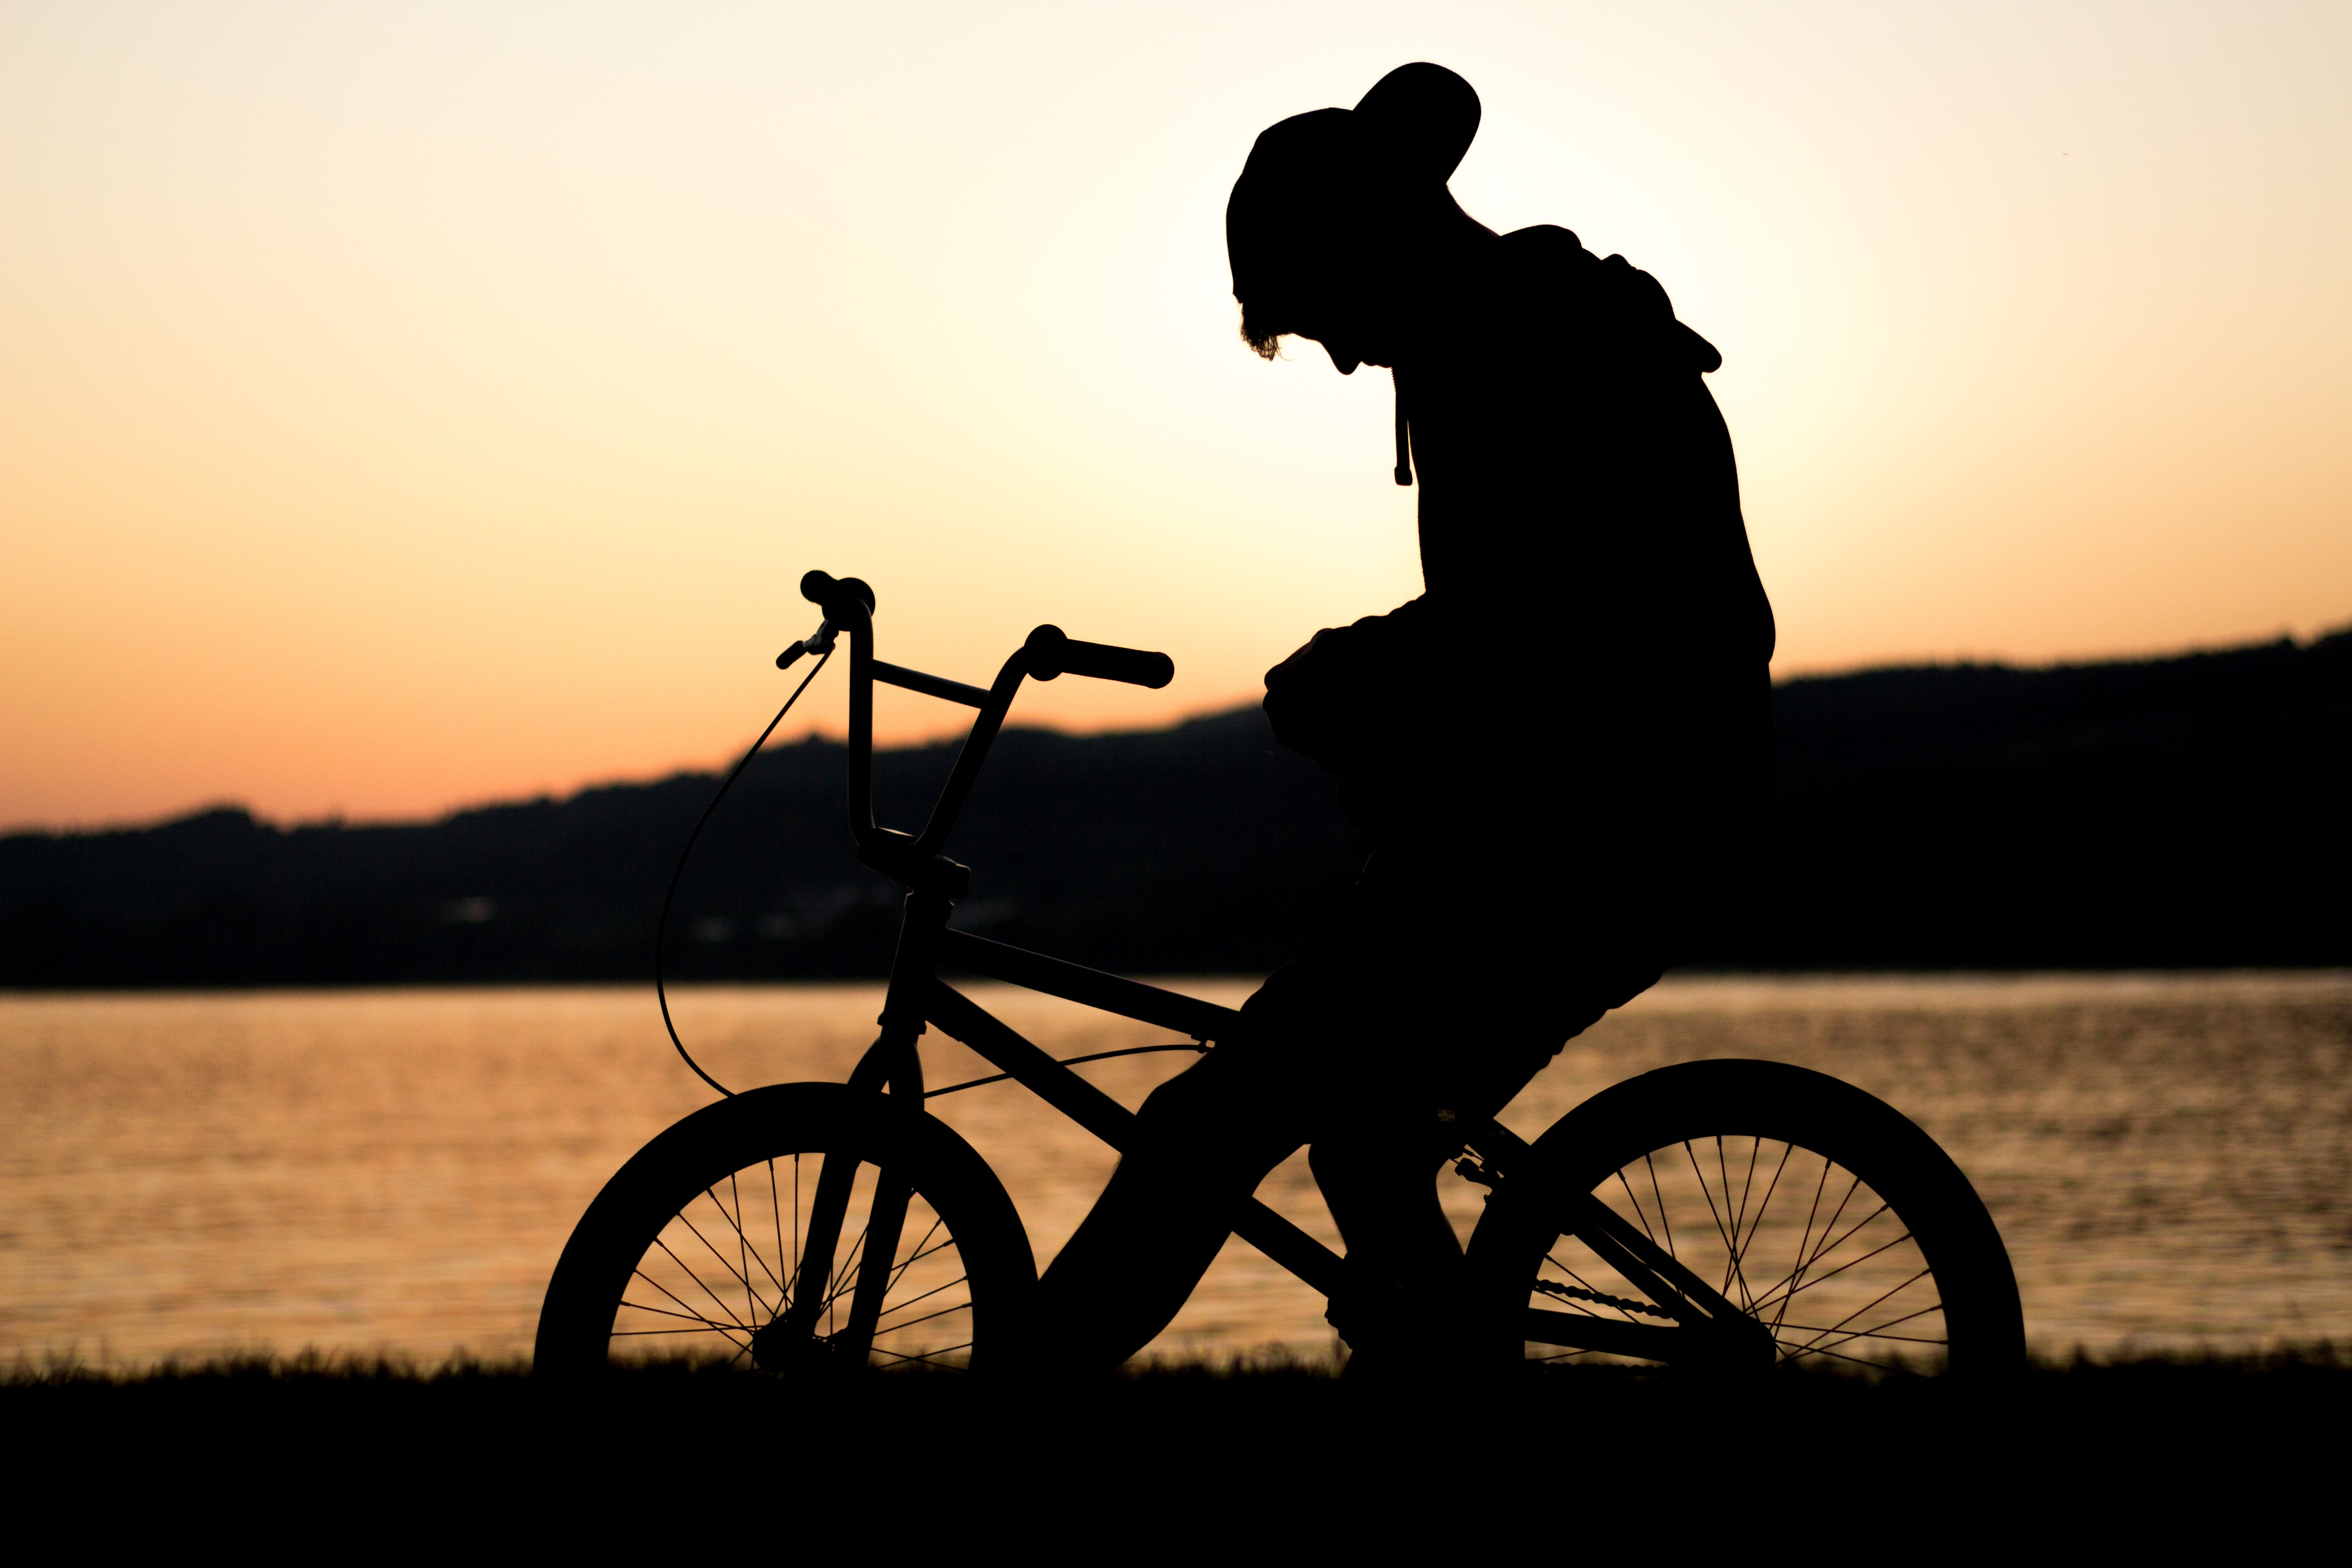 A silhouette of a young person sitting on a bike in front of a lake during a golden sunset